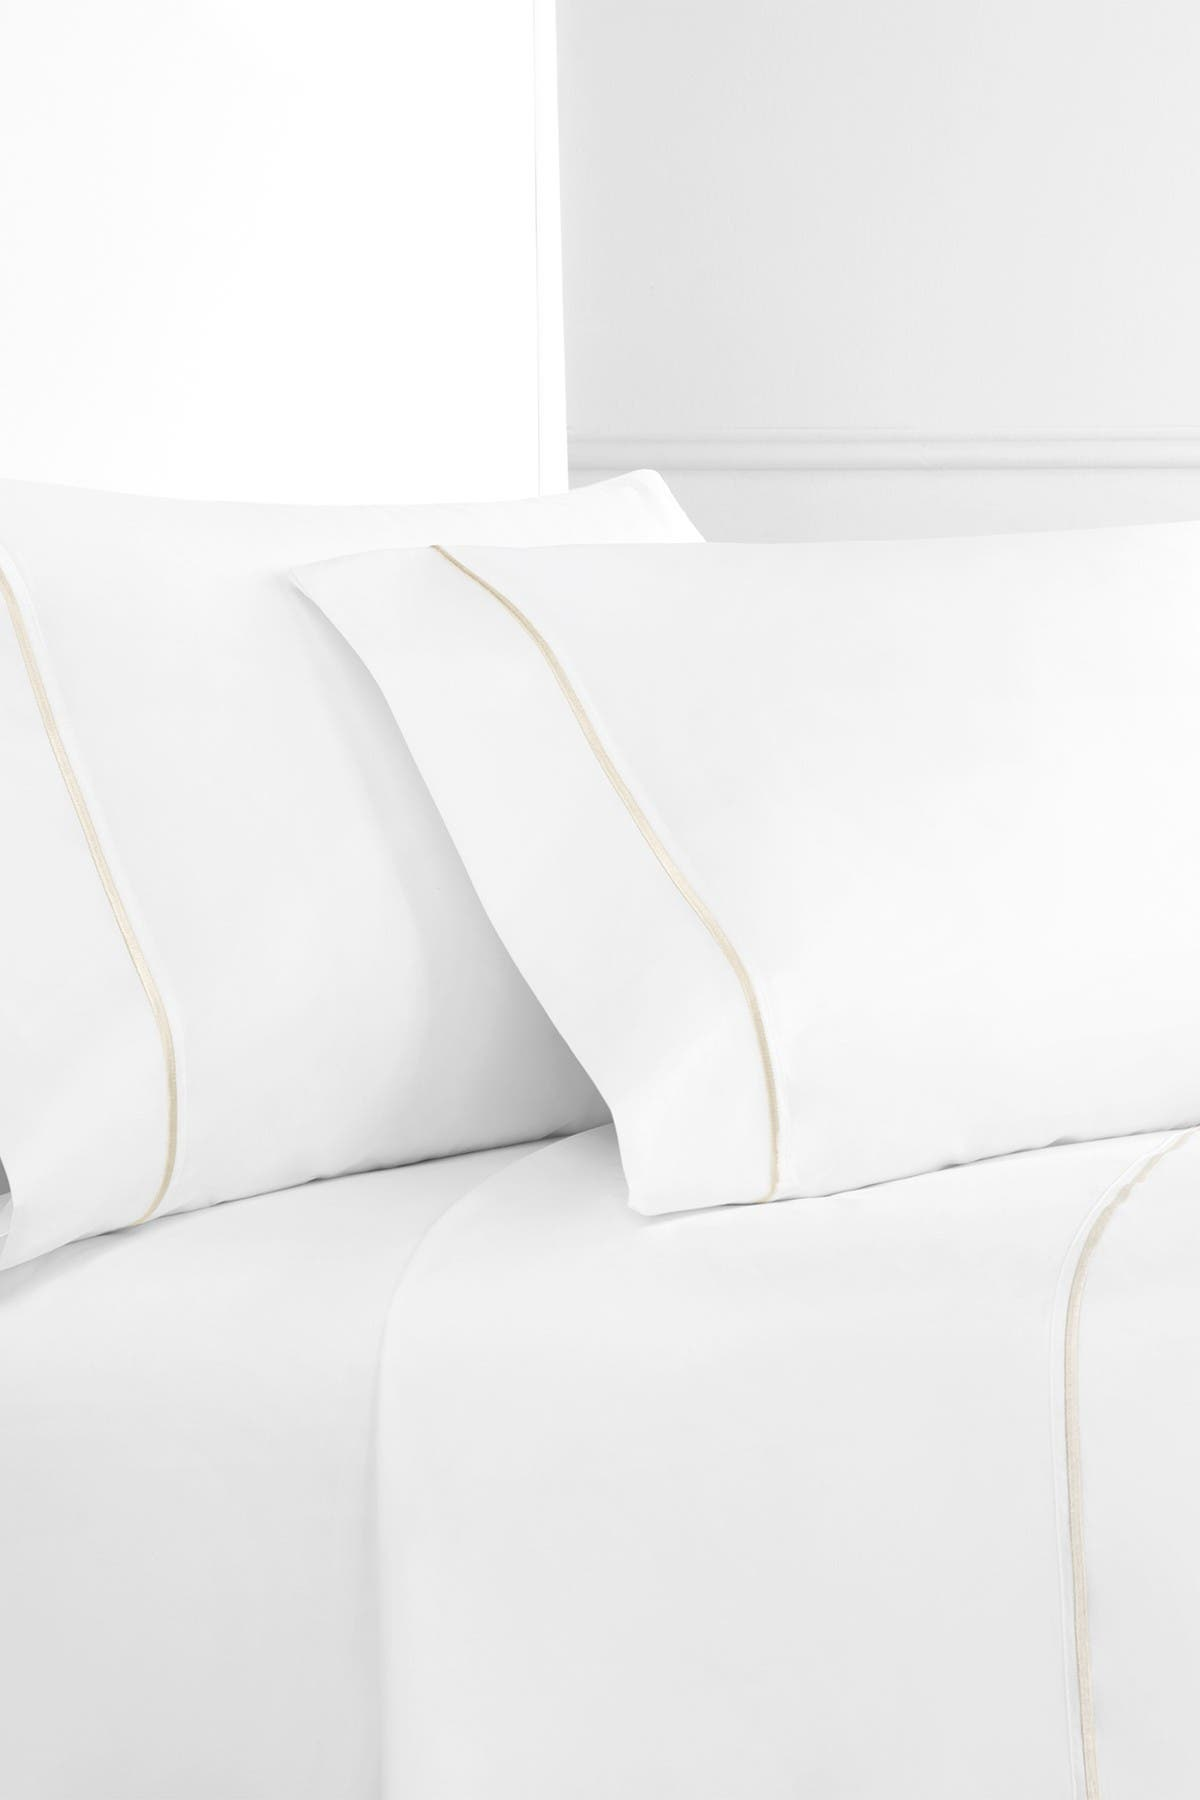 Image of Melange Home Single Marrow King Stripe 300 Thread Count 4-Piece Sheet Set - White